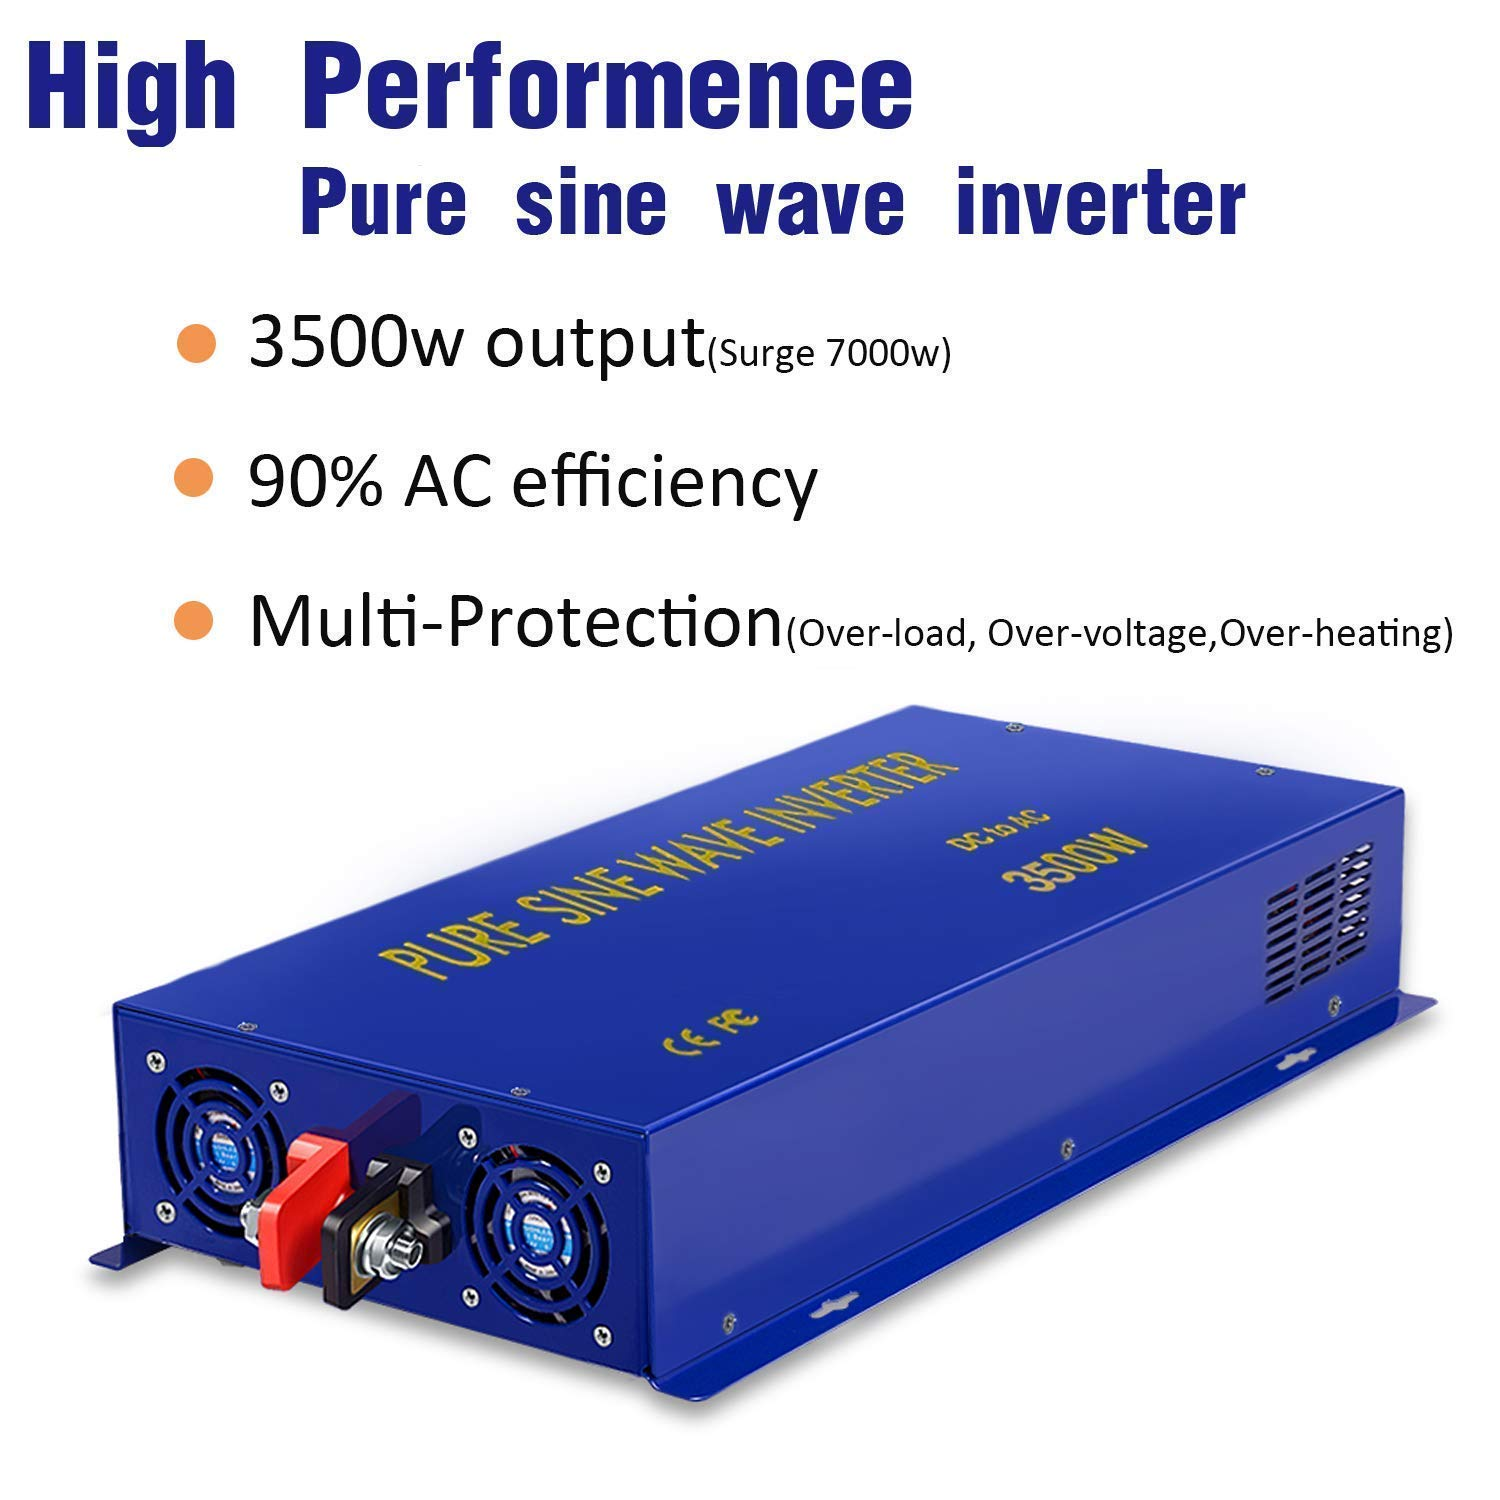 XYZ INVT 3500 Watt Pure Sine Wave Inverter 24V DC to 120V AC 3500W 24V 3500W Power Invert Surge 7000W Power Converter for Solar System.